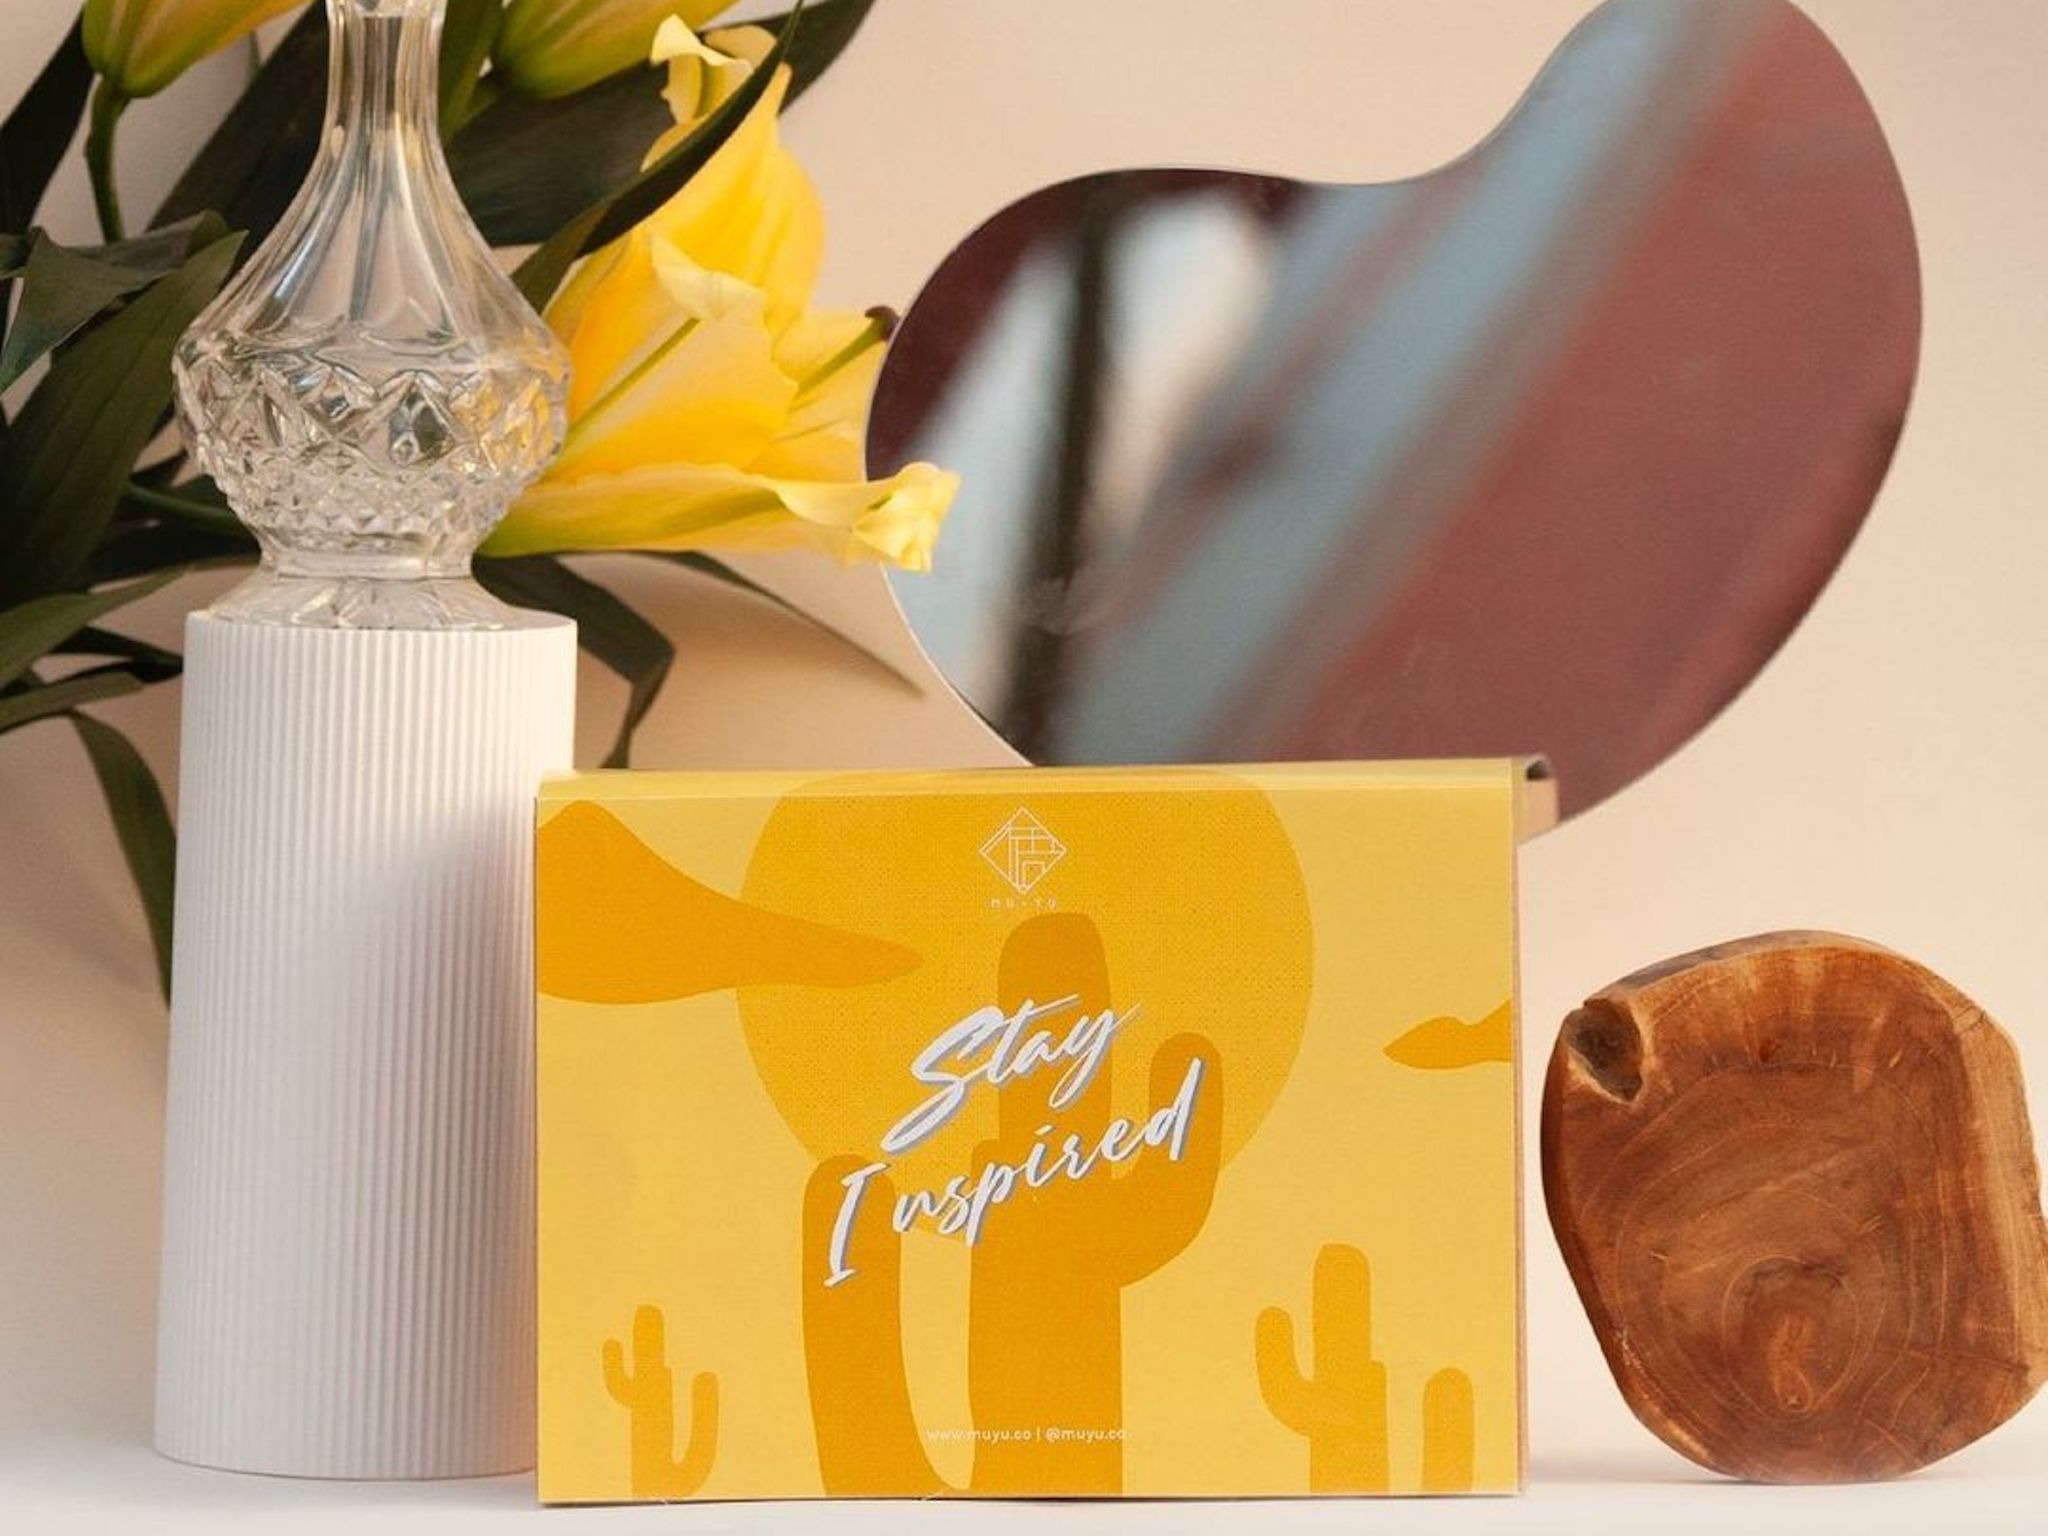 Stay Inspired gift set